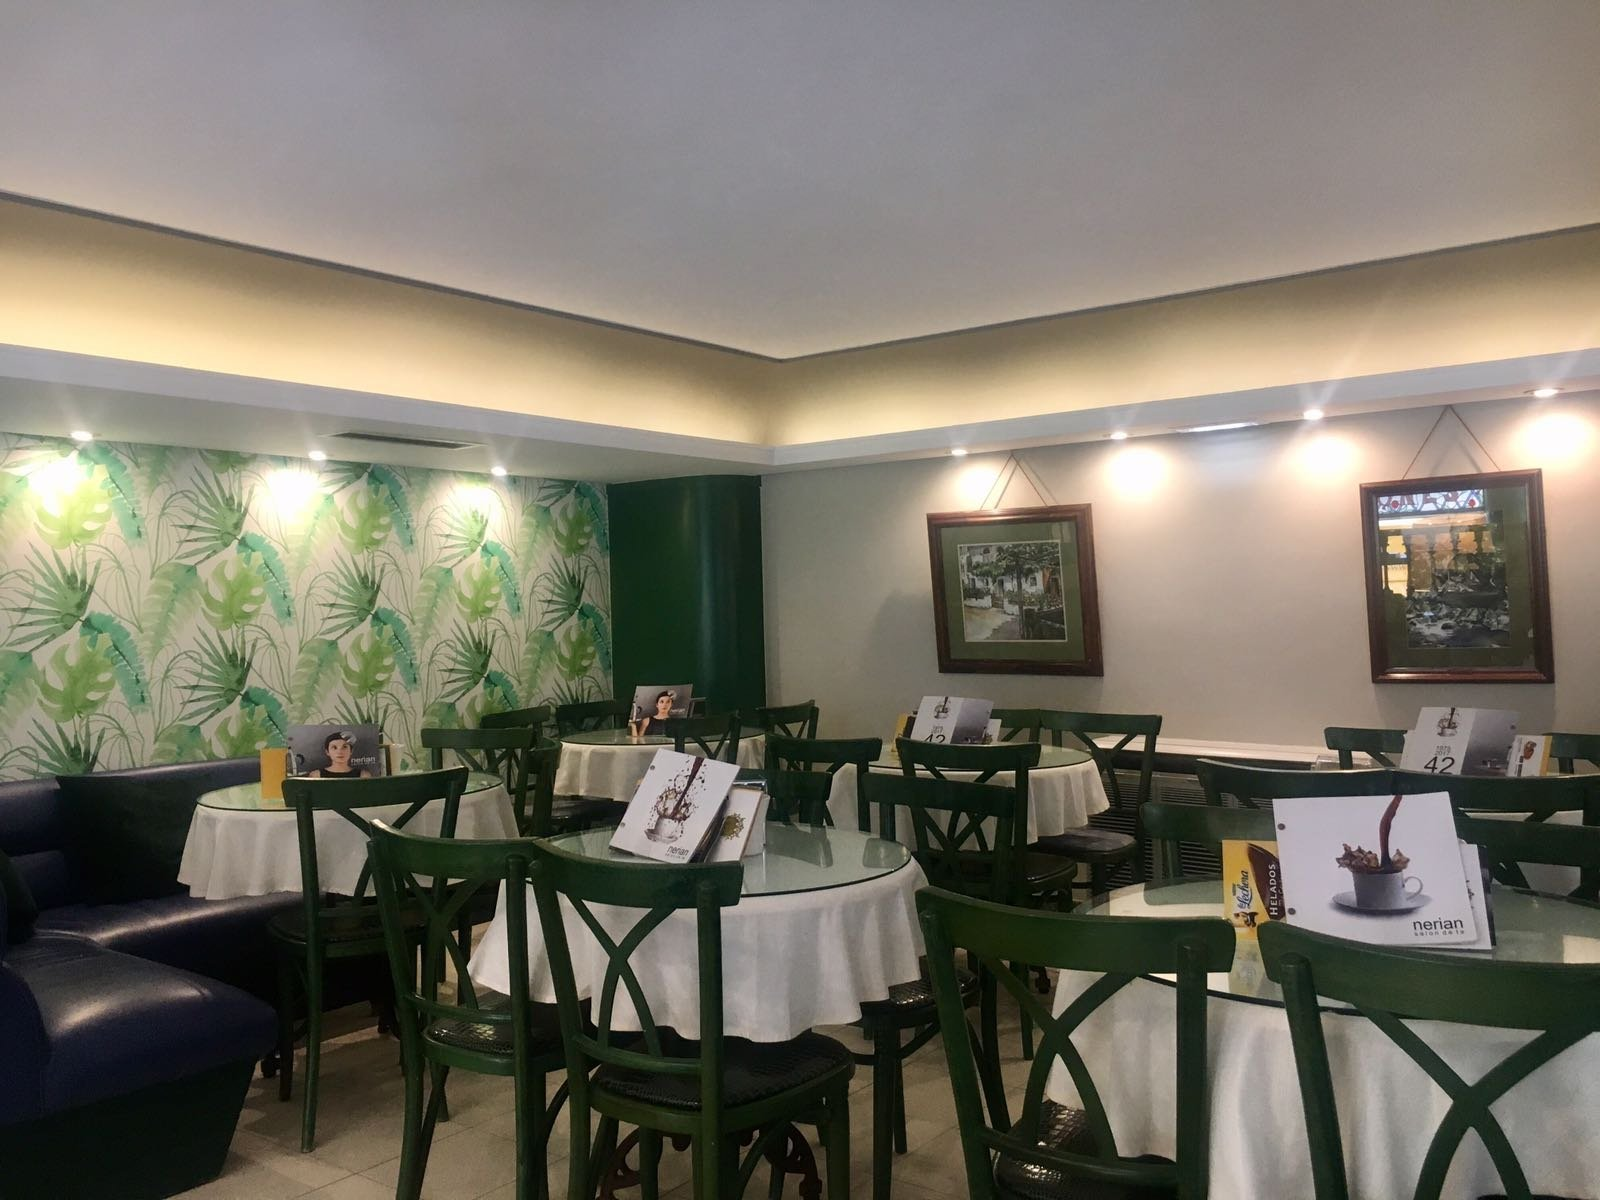 Where to eat Cafe food in Ribadesella: The Best Restaurants and Bars